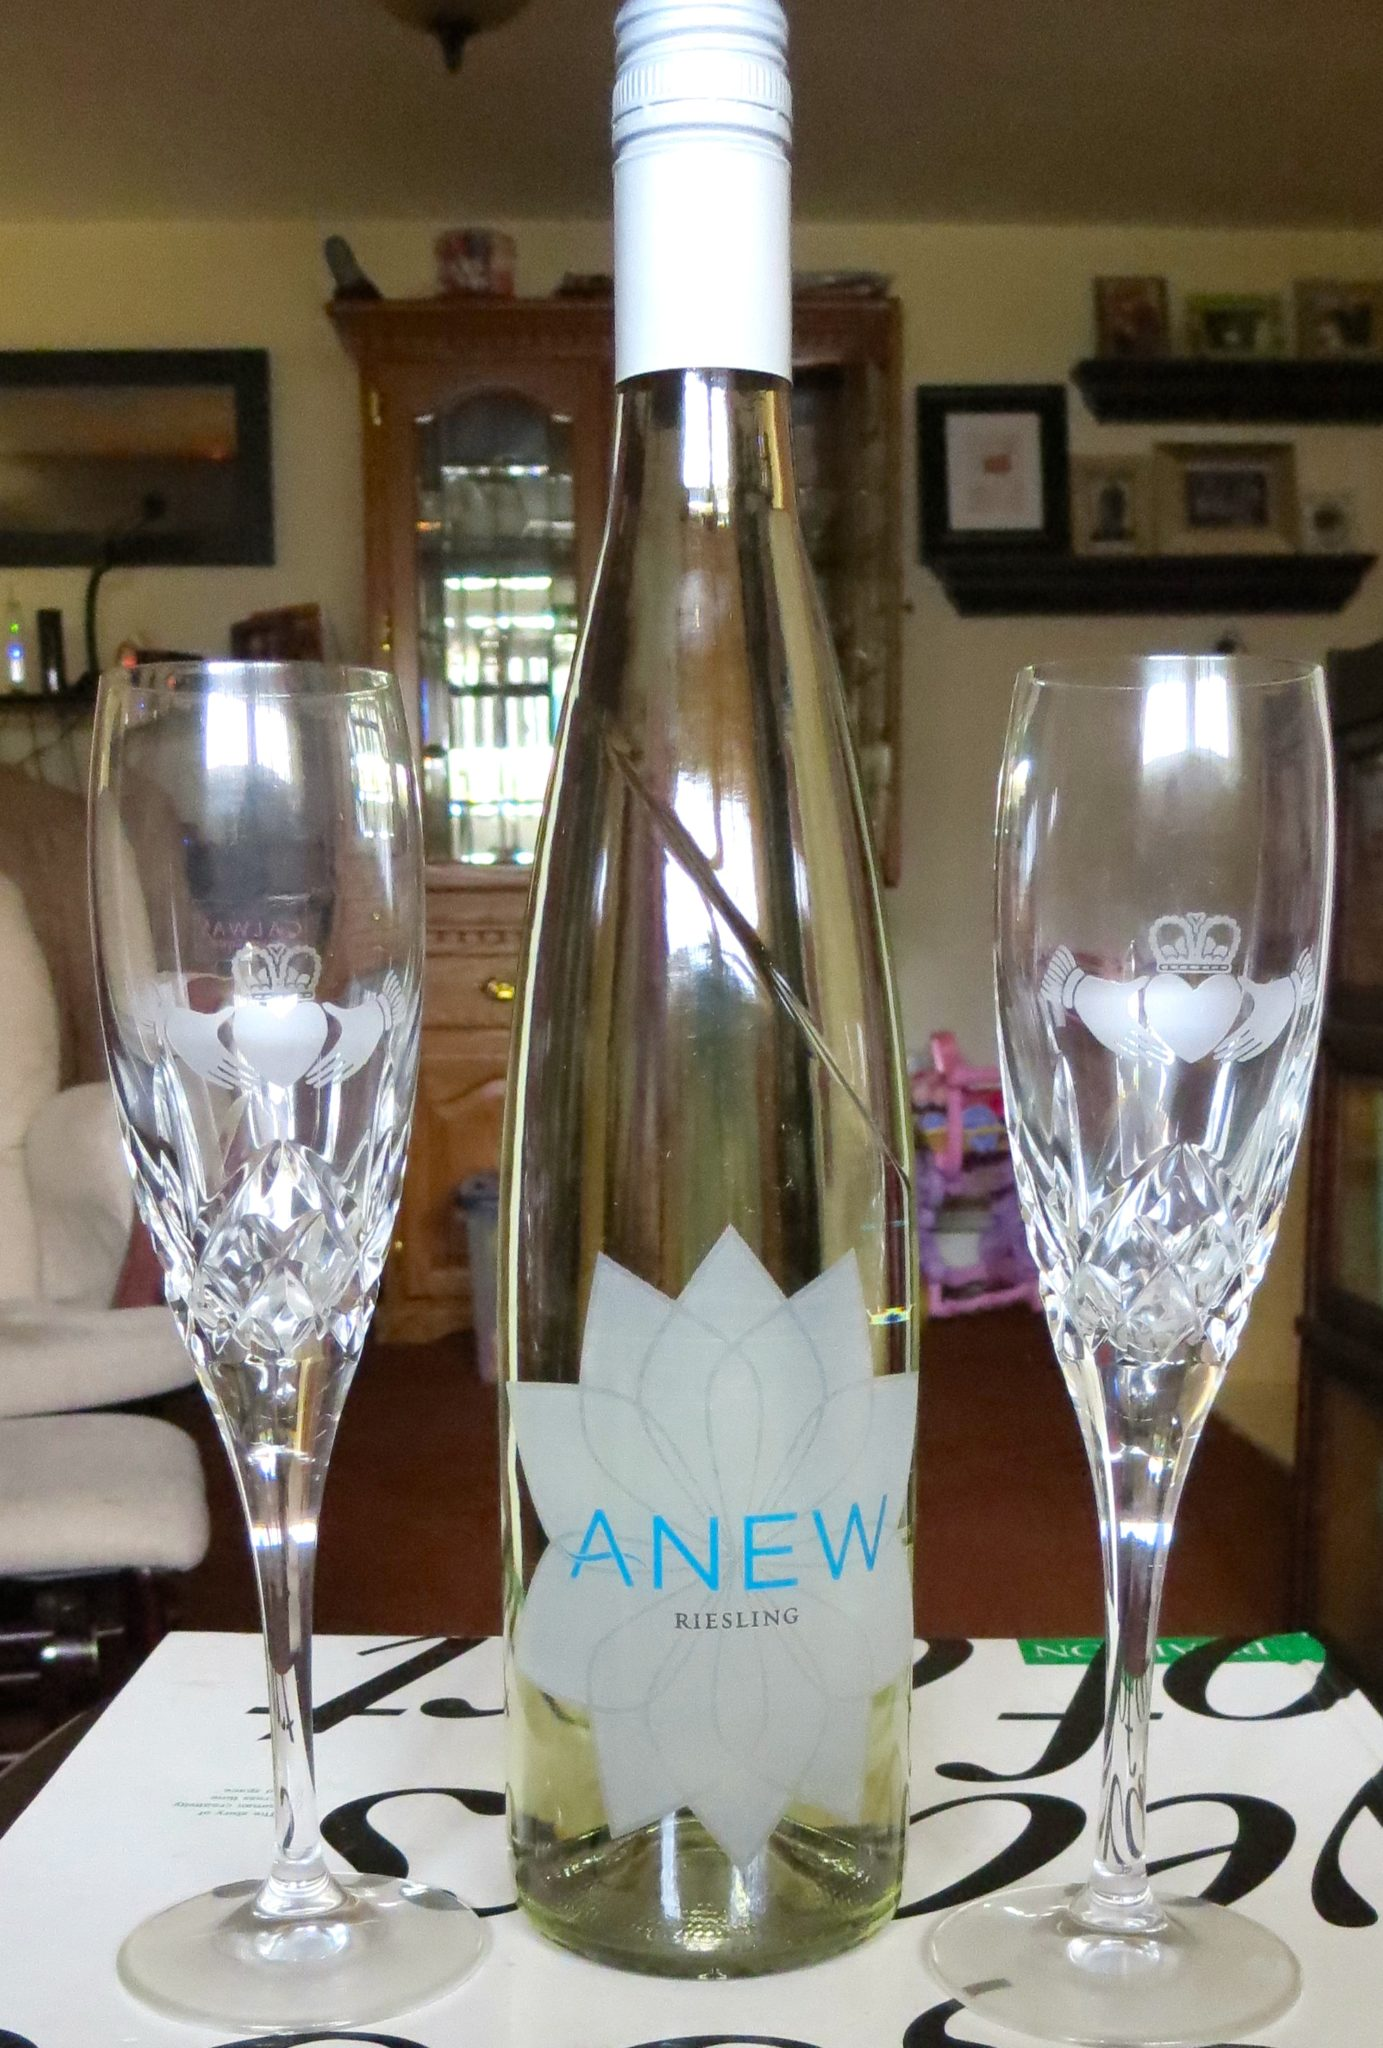 Anew Wine & Claddagh Glasses